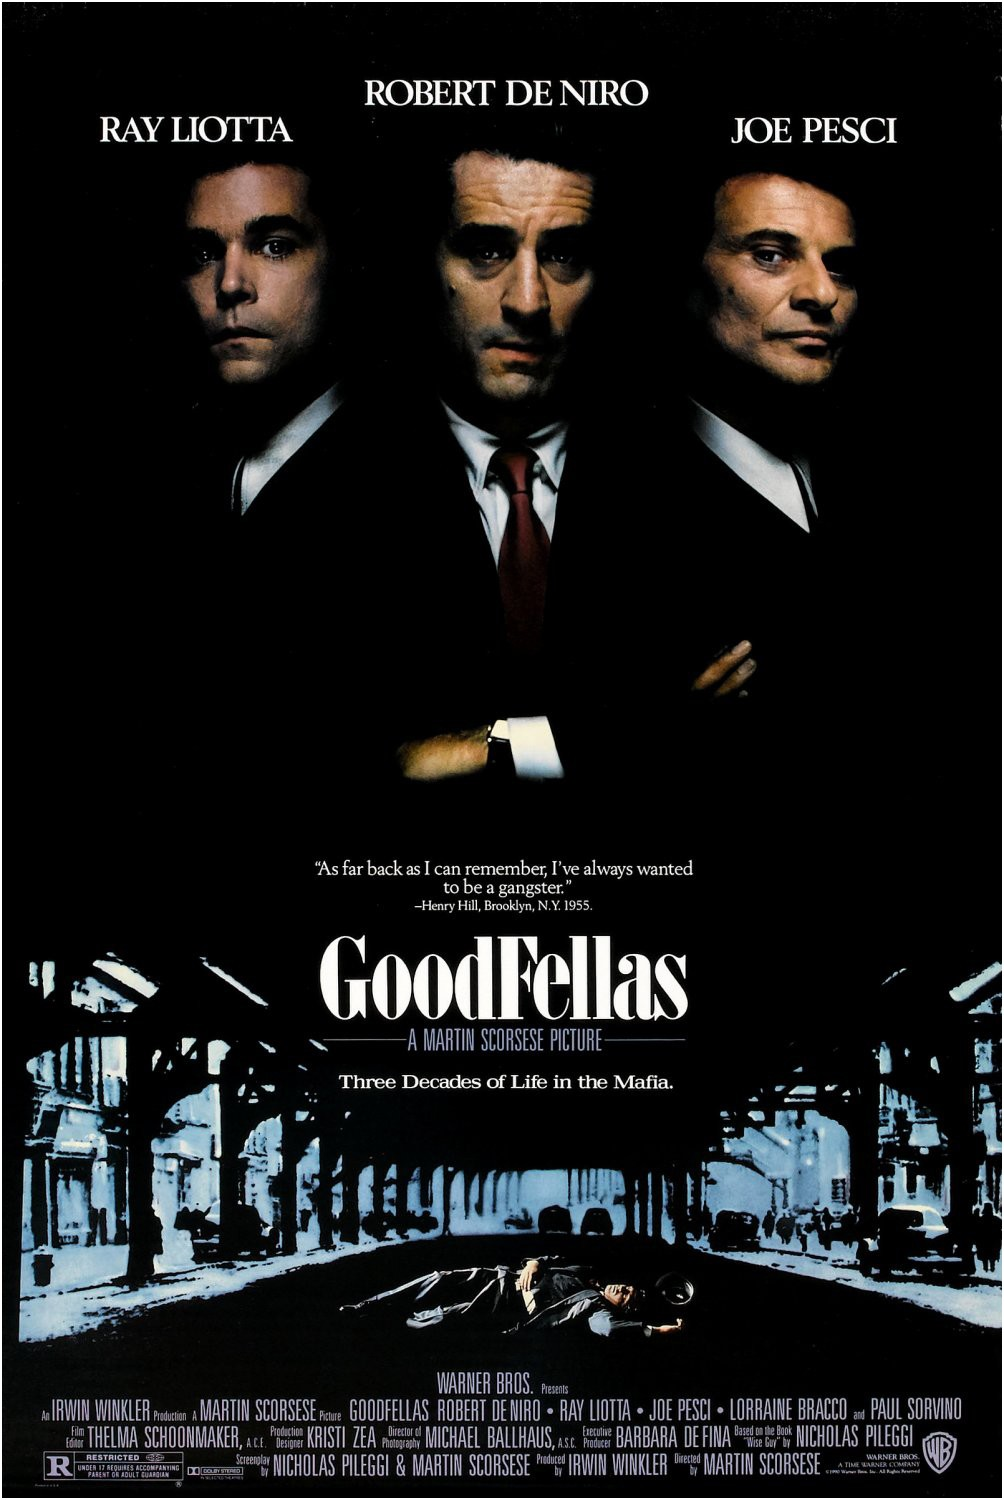 GOODFELLAS [Week Long Engagement]